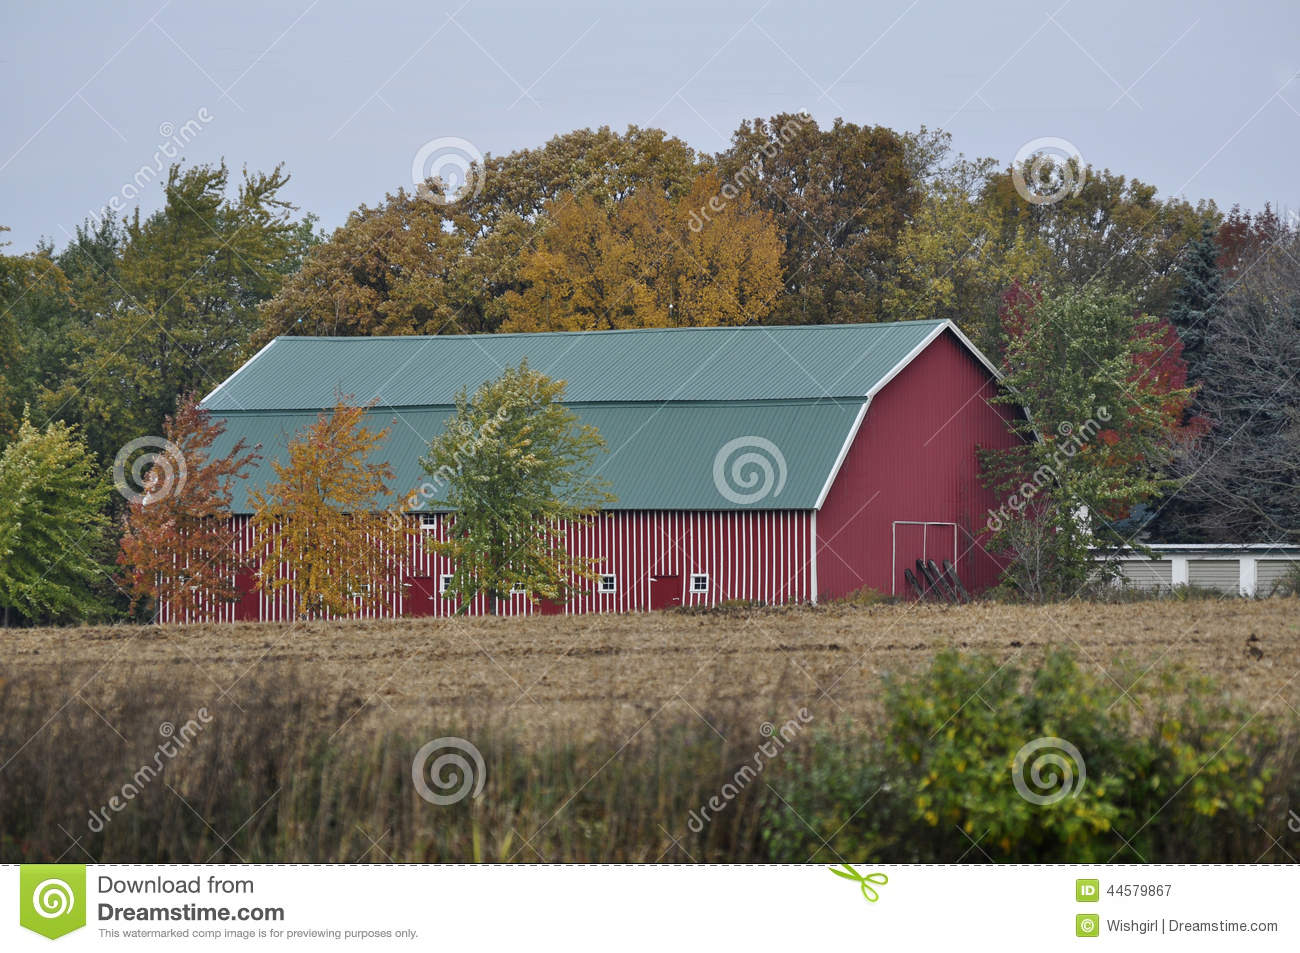 Behind the barn extended and enlarged 6